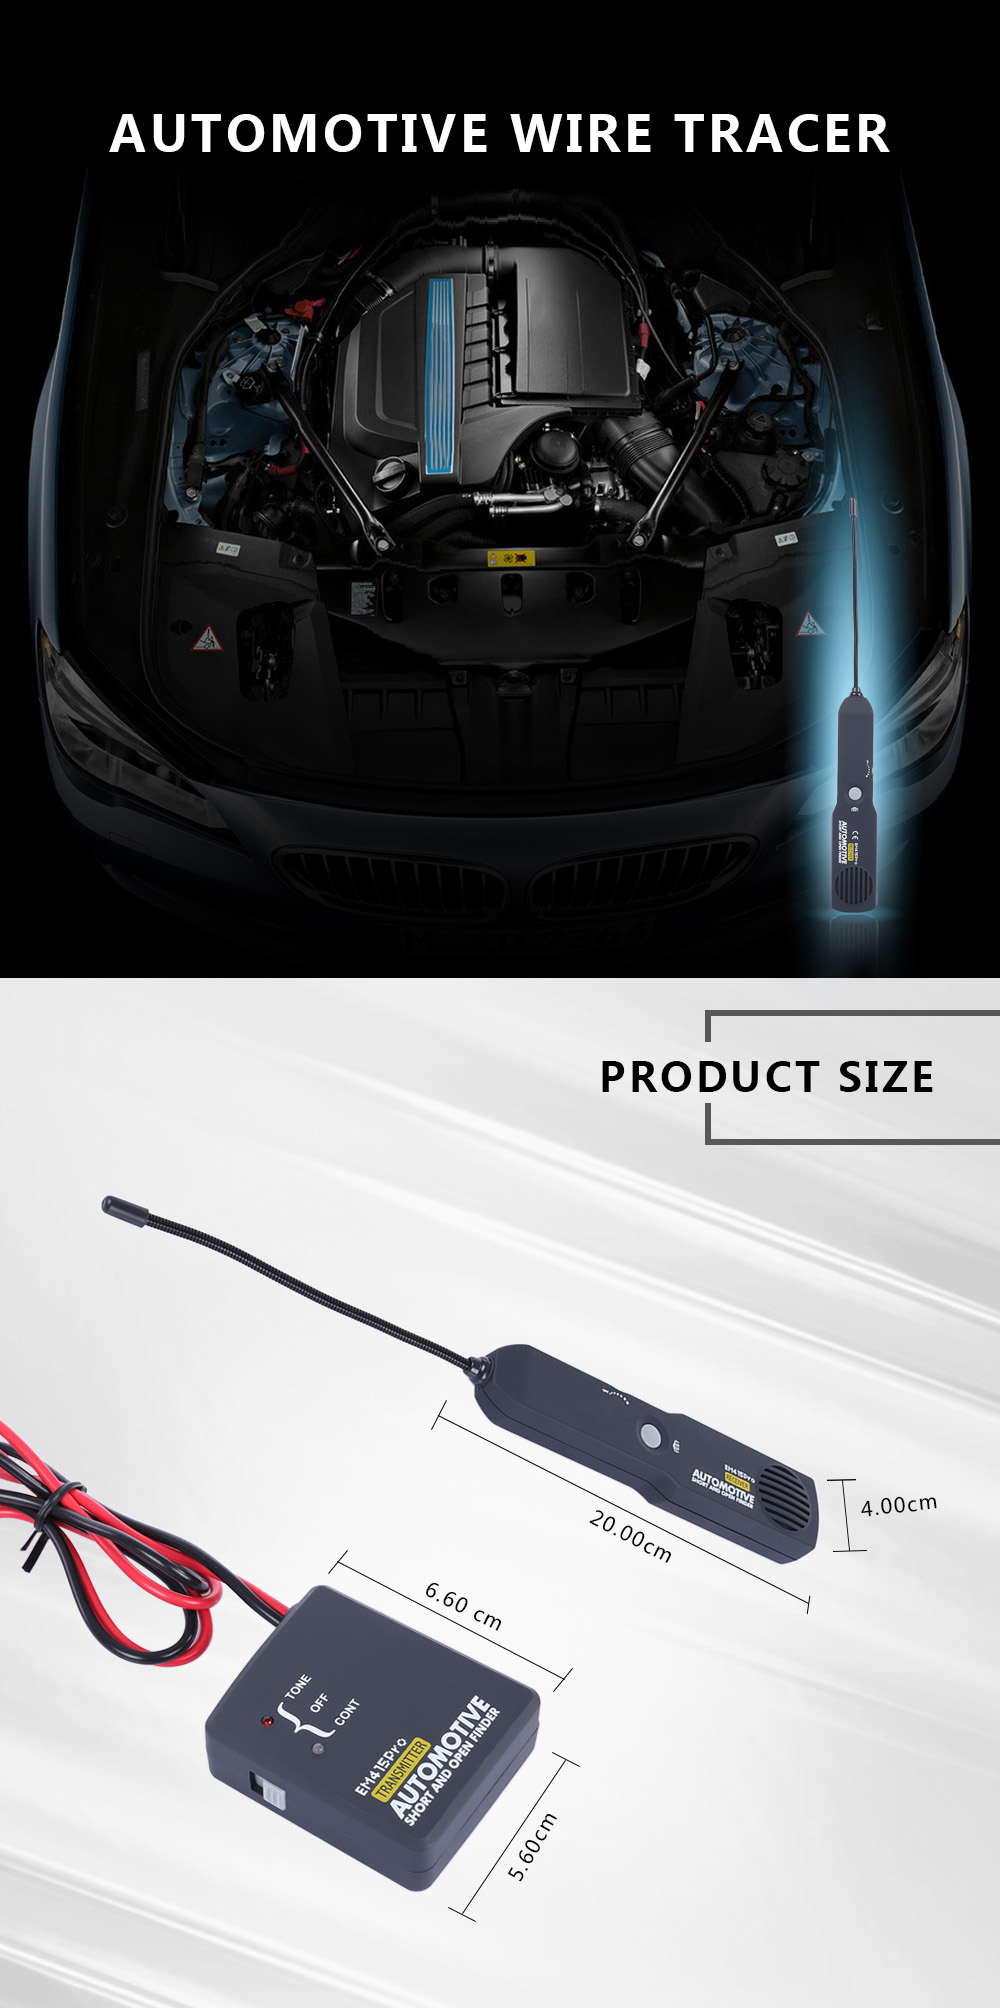 Automotive Wire Tracer - $41.09 Free Shipping|GearBest.com